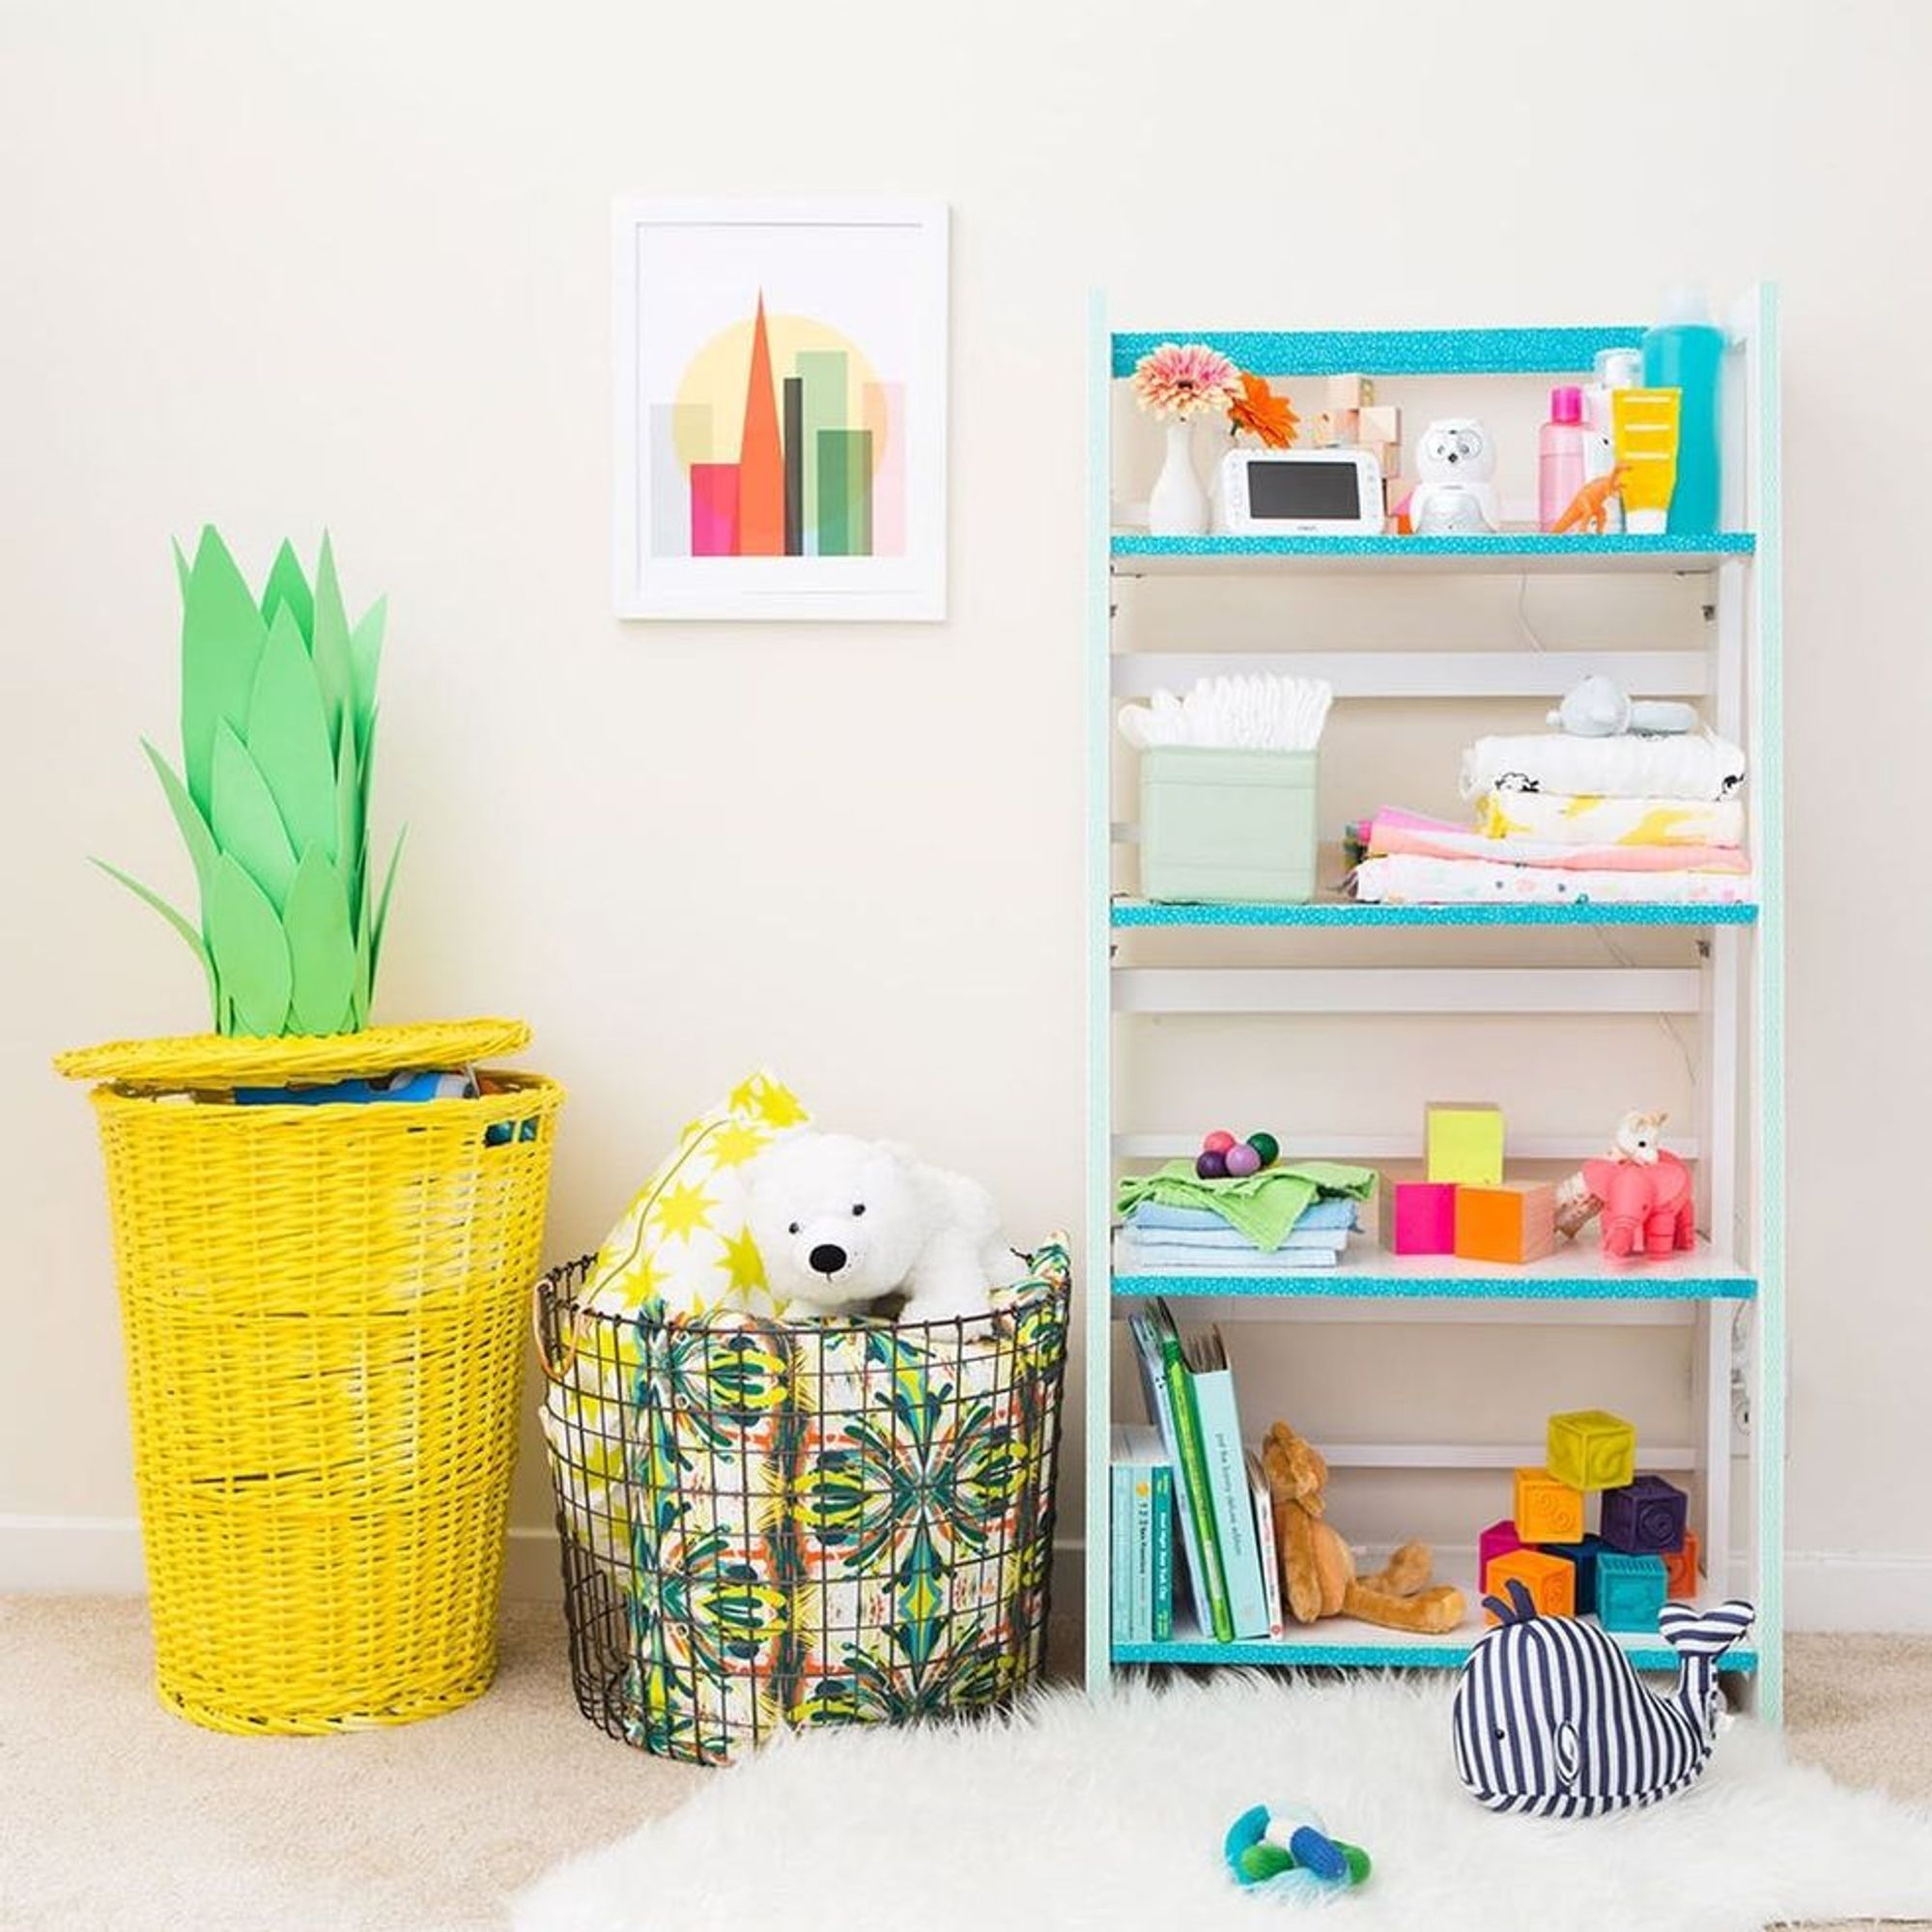 How To Decorate an Adorable *and* Sensible Nursery